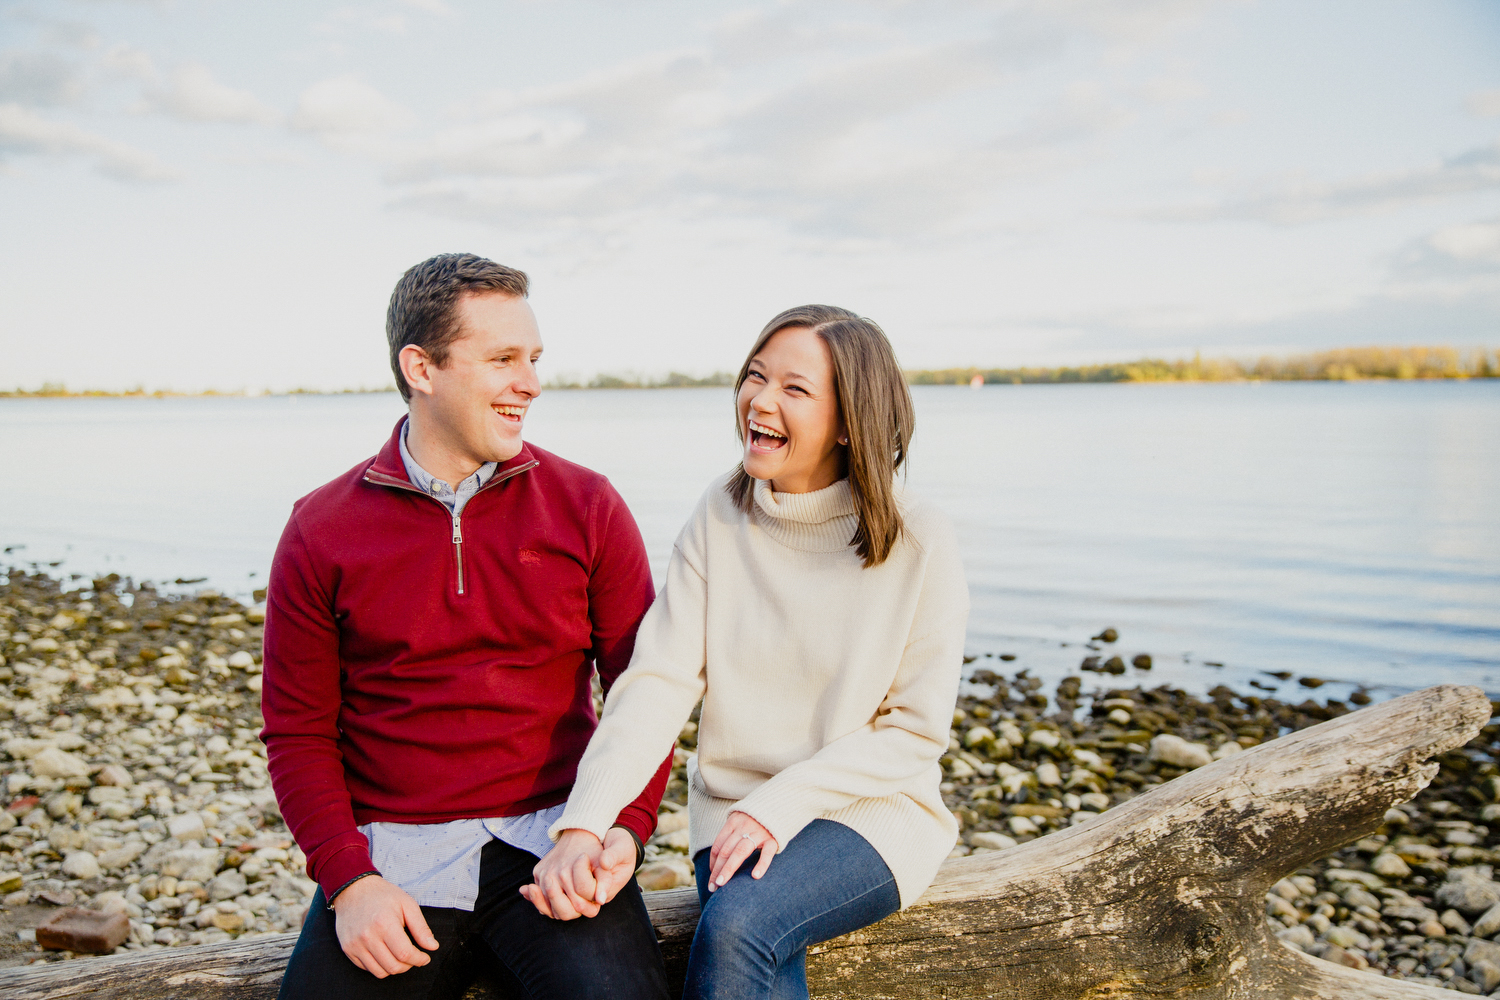 cherry beach engagement photography by magnolia studios